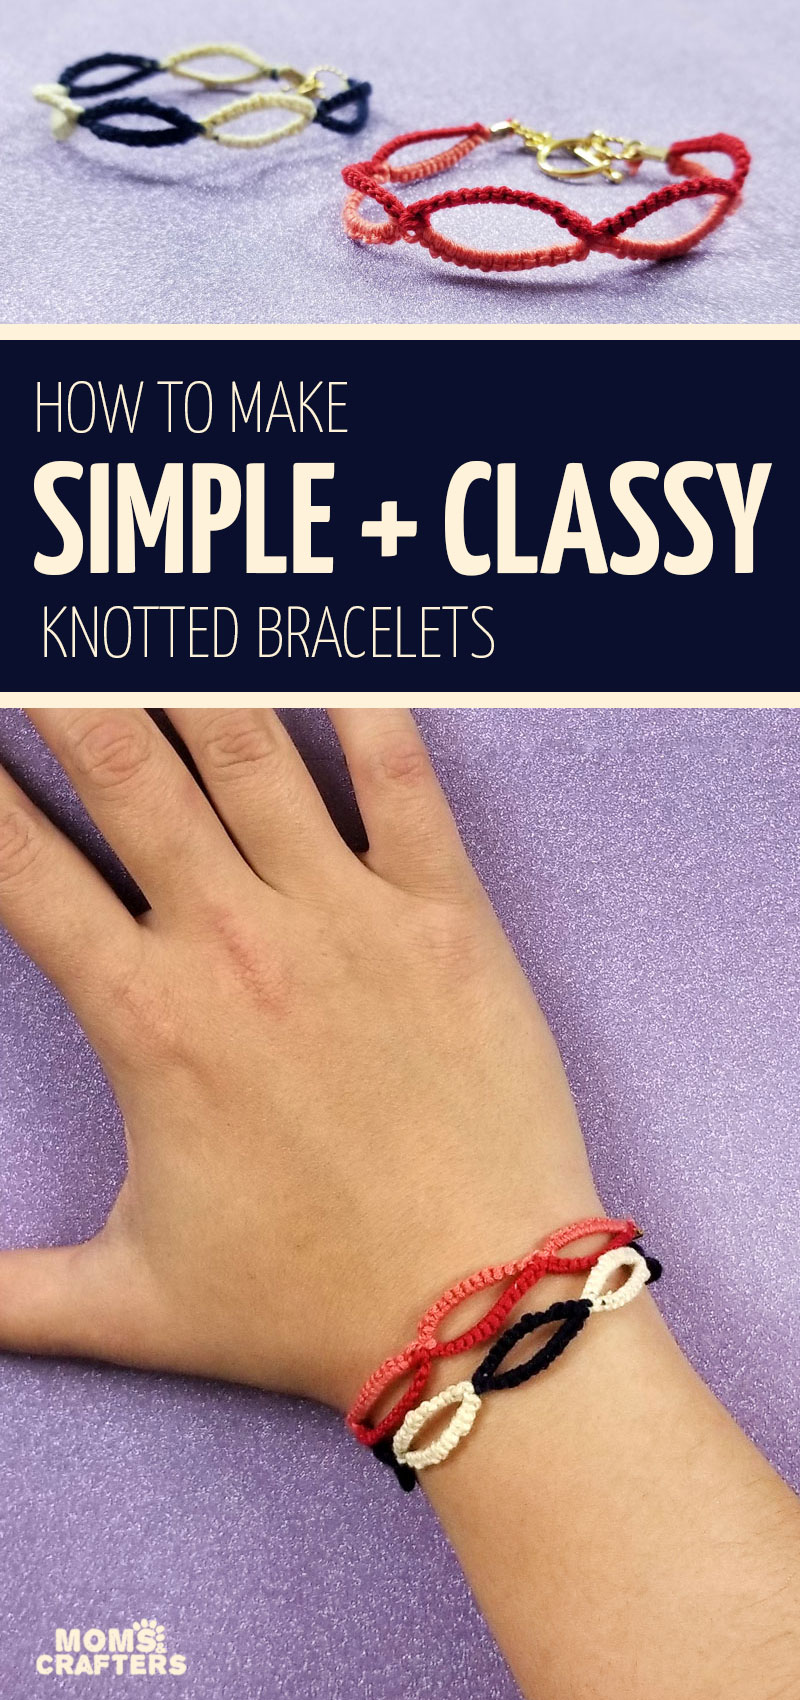 Click to learn how to make this deceptively cool but insanely easy friendship bracelet pattern! This easy friendship bracelet for beginners nad for adults is so much fun and a perfect summer project for teens and tweens!